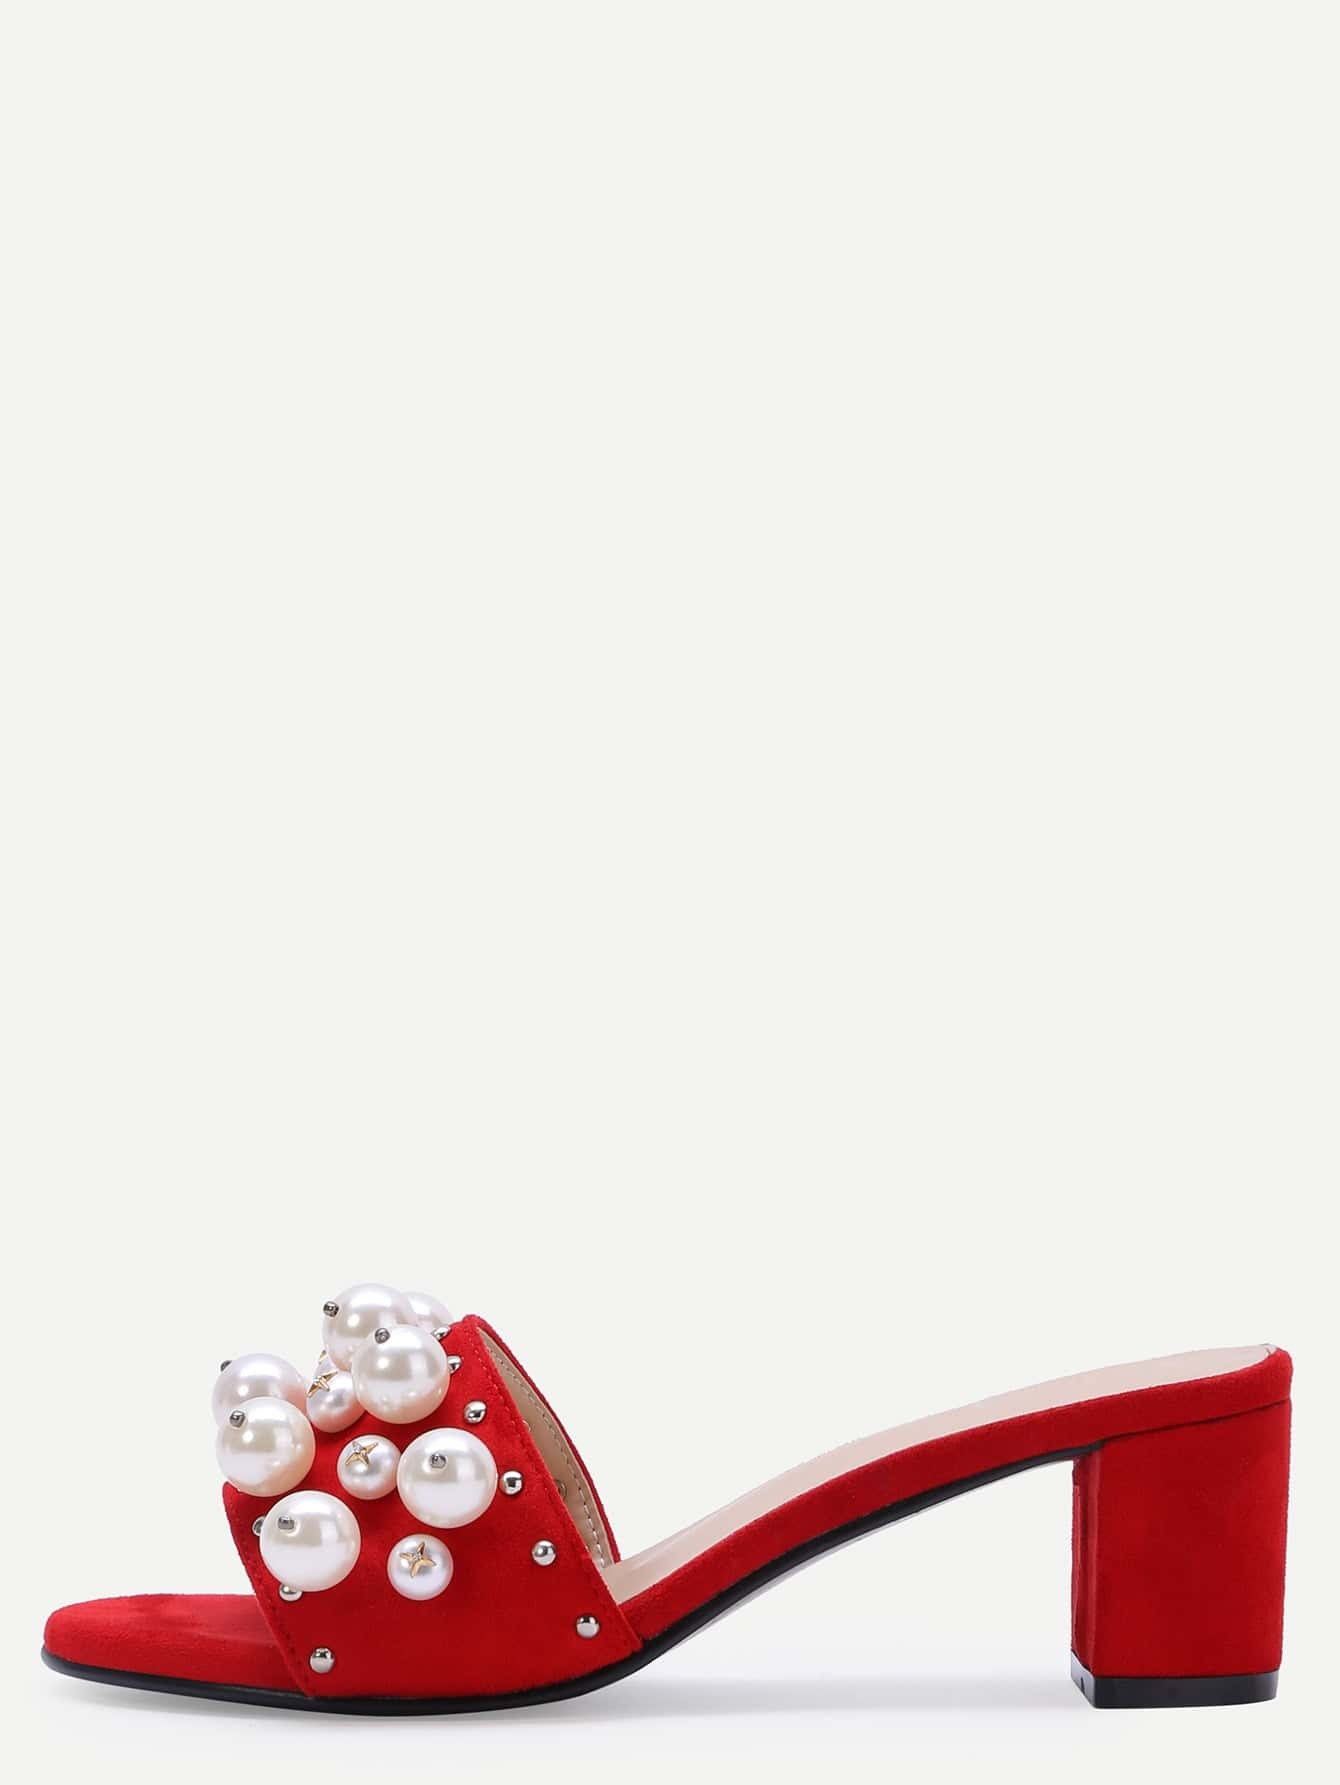 Red Open Toe Pearl Embellished SlippersRed Open Toe Pearl Embellished Slippers<br><br>color: Red<br>size: EUR35,EUR36,EUR37,EUR38,EUR39,EUR40